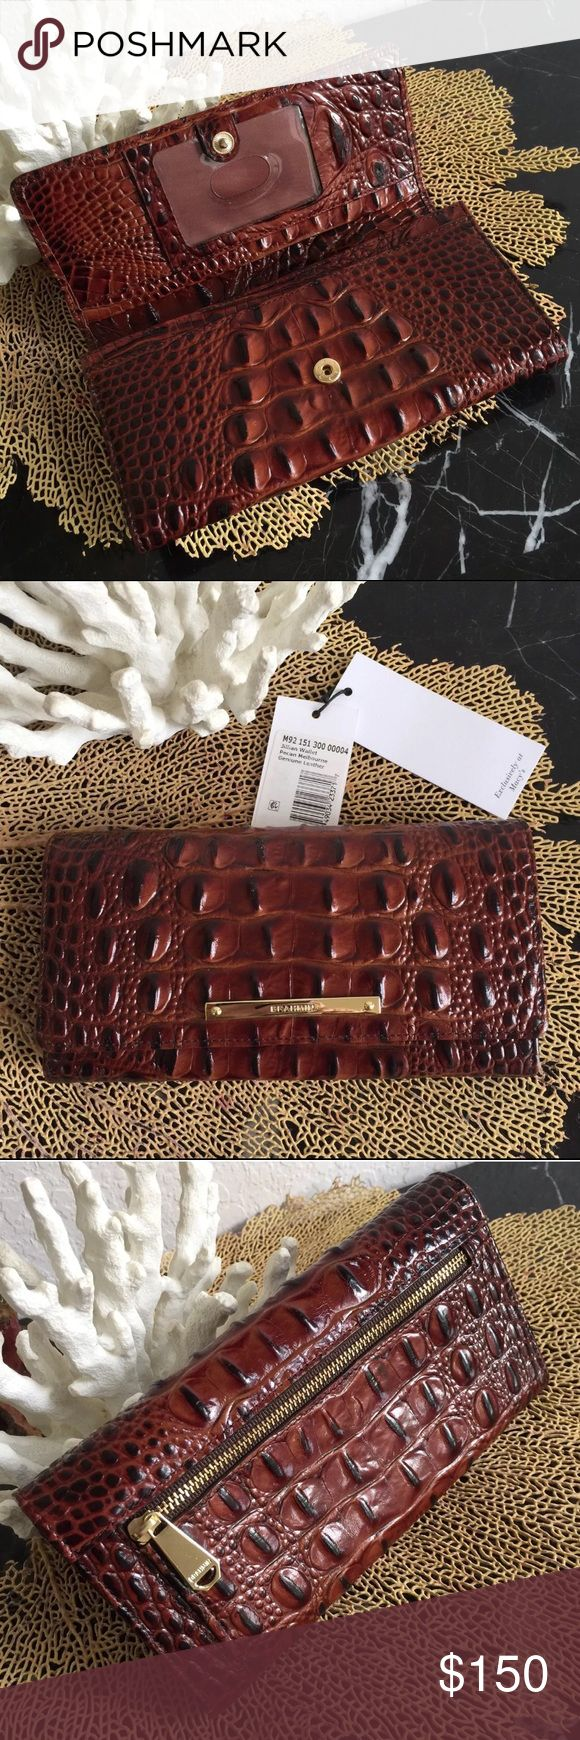 "⚓️NWT ⚓️BRAHMIN JILLIAN ⚓️PECAN ⚓️WALLET⚓️ Brahmin PECAN ""JILLIAN"" Wallet  Croc embossed leather   12 Credit Card slots   Tons of organization! Roomy enough for your larger cell phone and a small ring of keys with its 4 slip in compartments plus center zip compartment   ID window   Also a back zip coin pocket  Snap closure   Goldtone hardware  Brand new, tag removed but will send, Pristine, never used    Fast shipping!! Brahmin Bags Wallets"